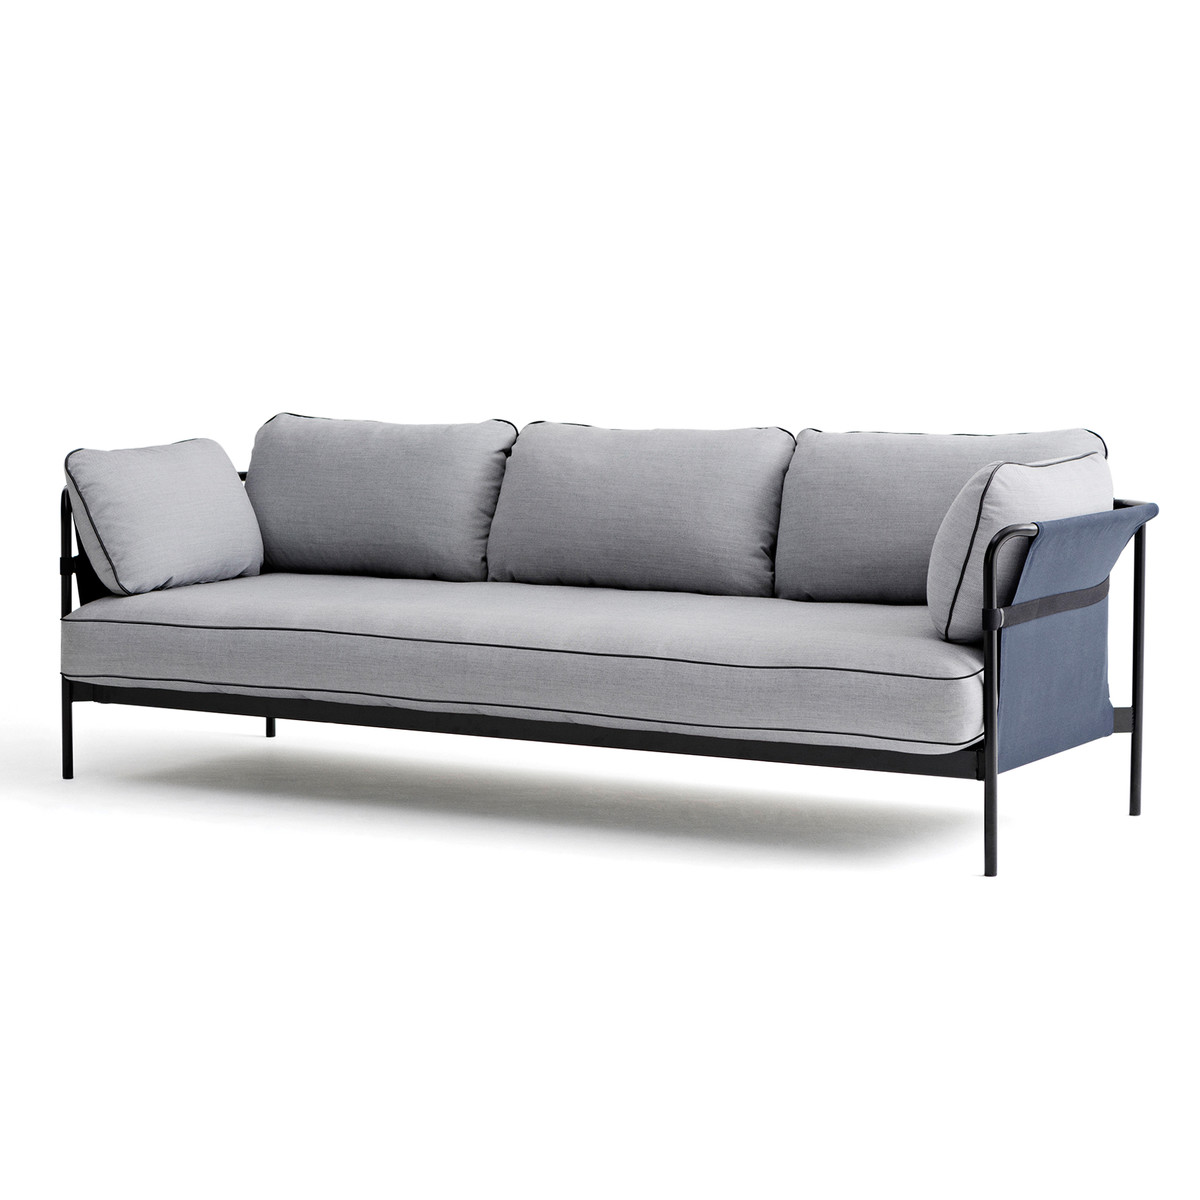 hay can sofa 3 sitzer schwarz canvas blau surface. Black Bedroom Furniture Sets. Home Design Ideas